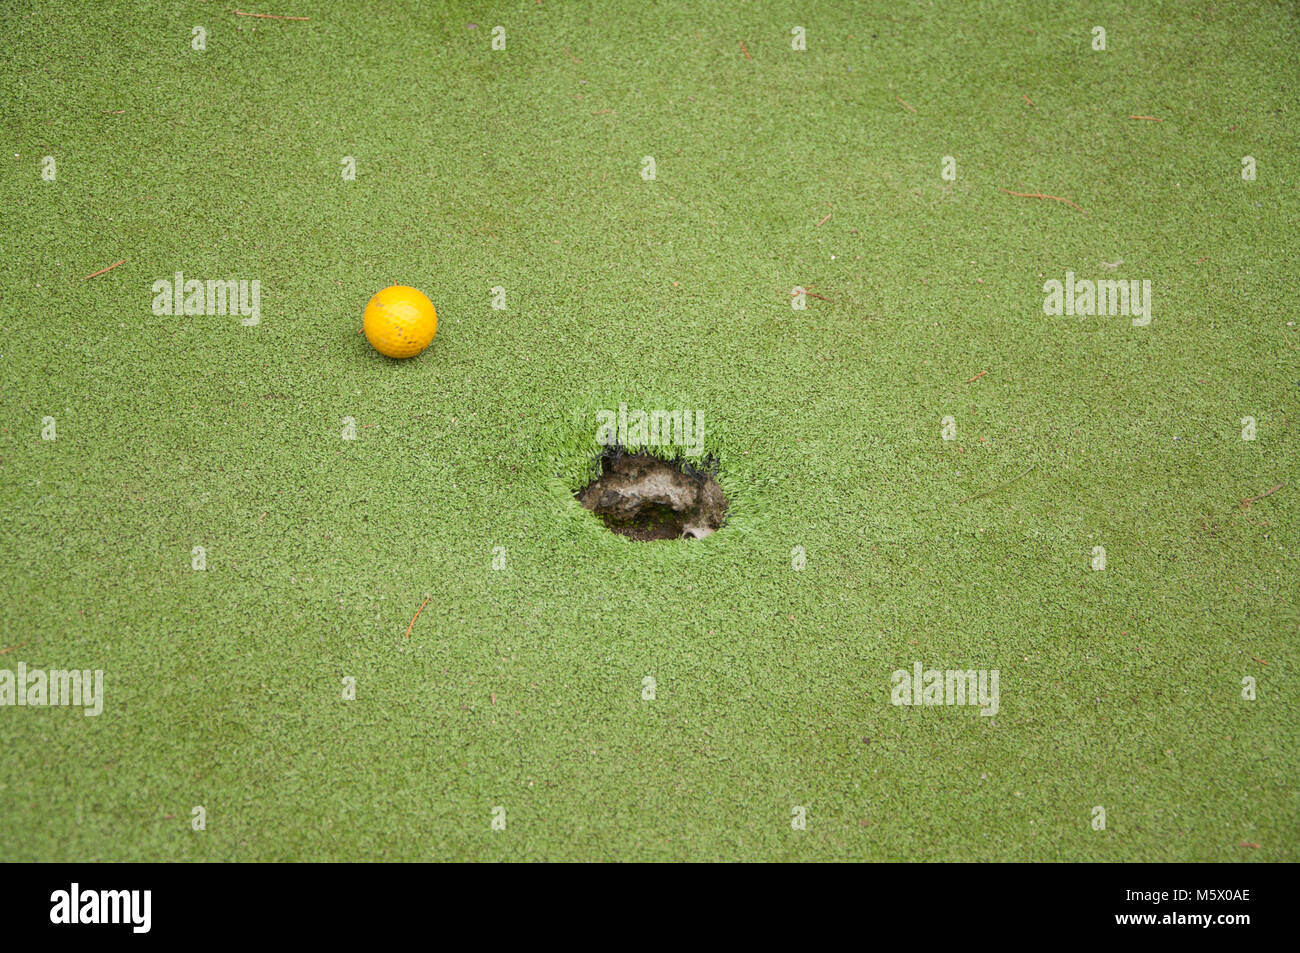 Yellow Golf Ball On A Golf Green - Stock Image